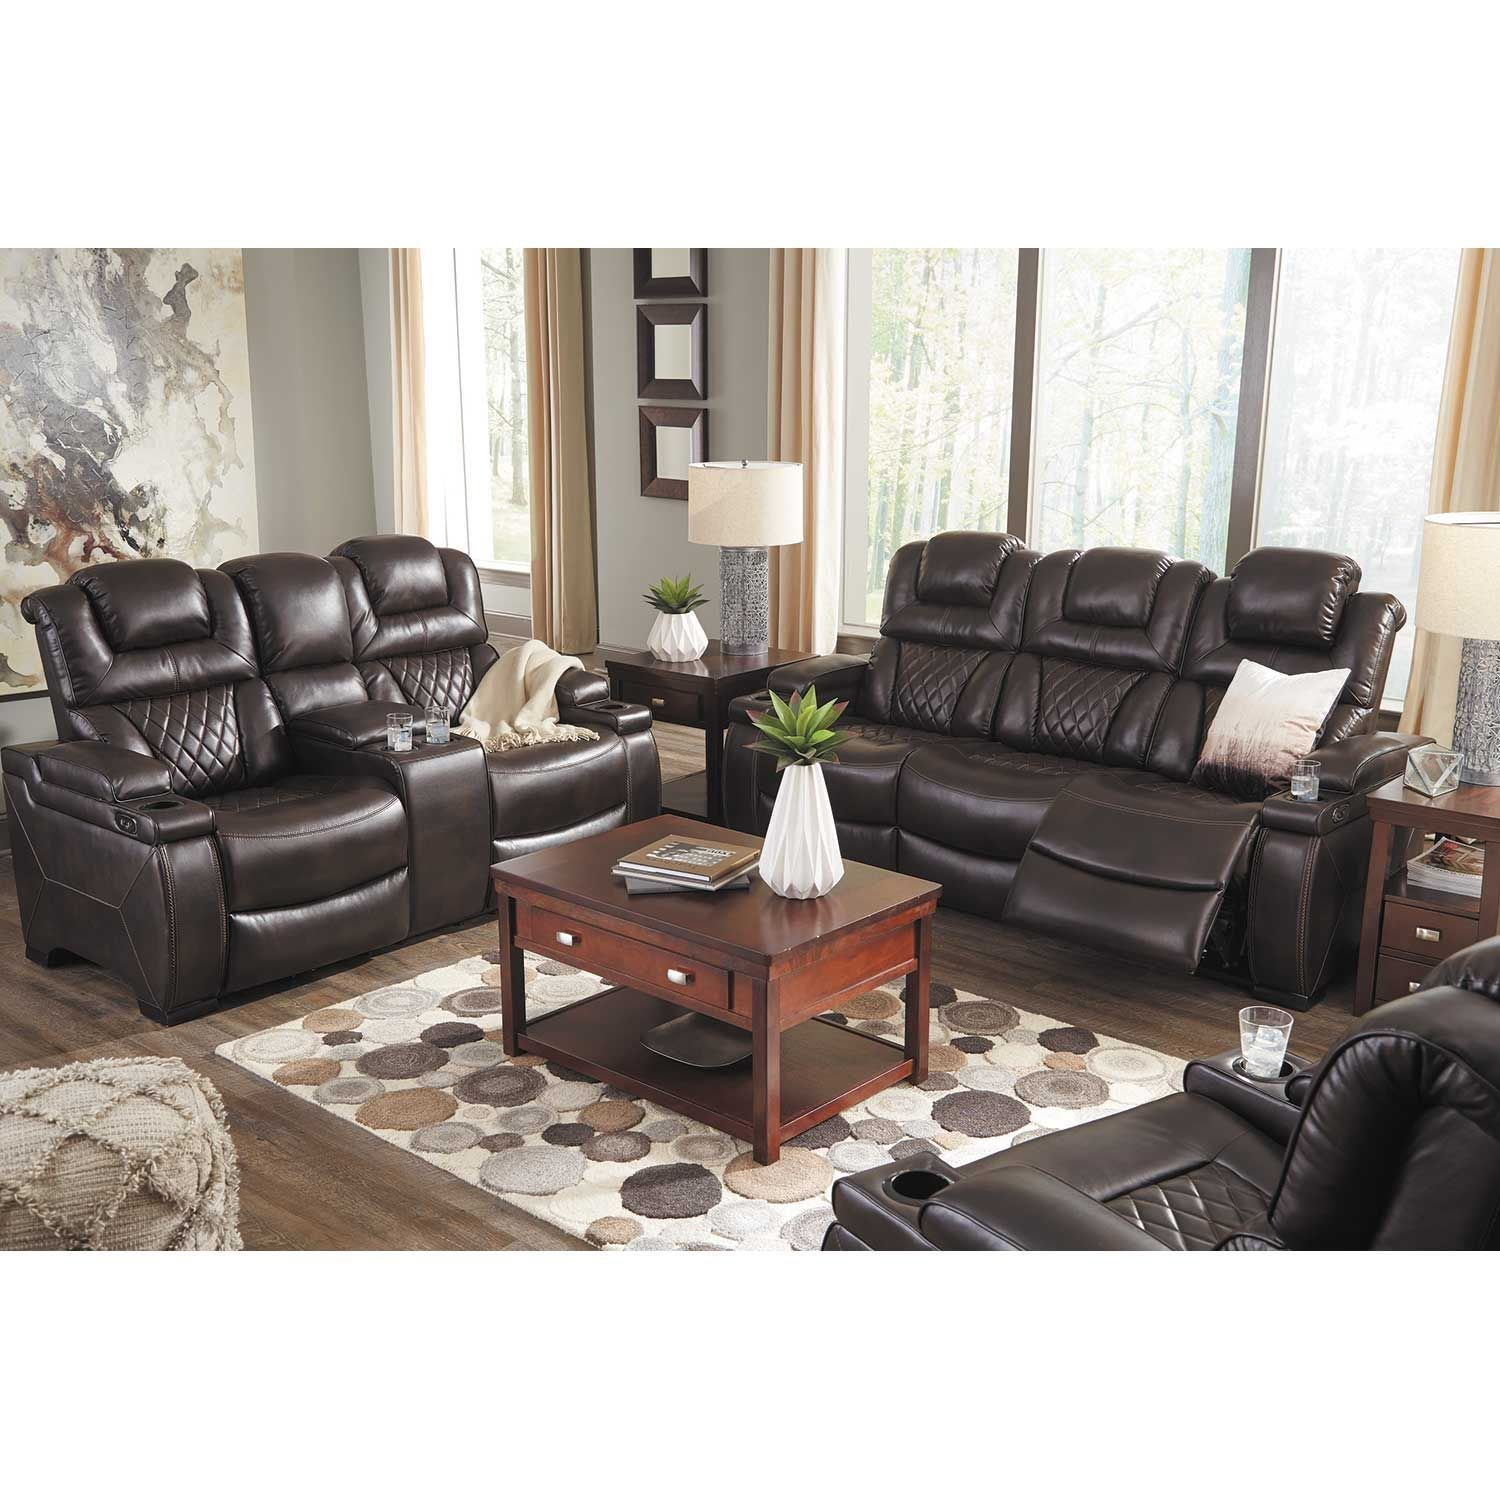 Ashley Furntiure: Warnerton Power Reclining Sofa With Drop Table